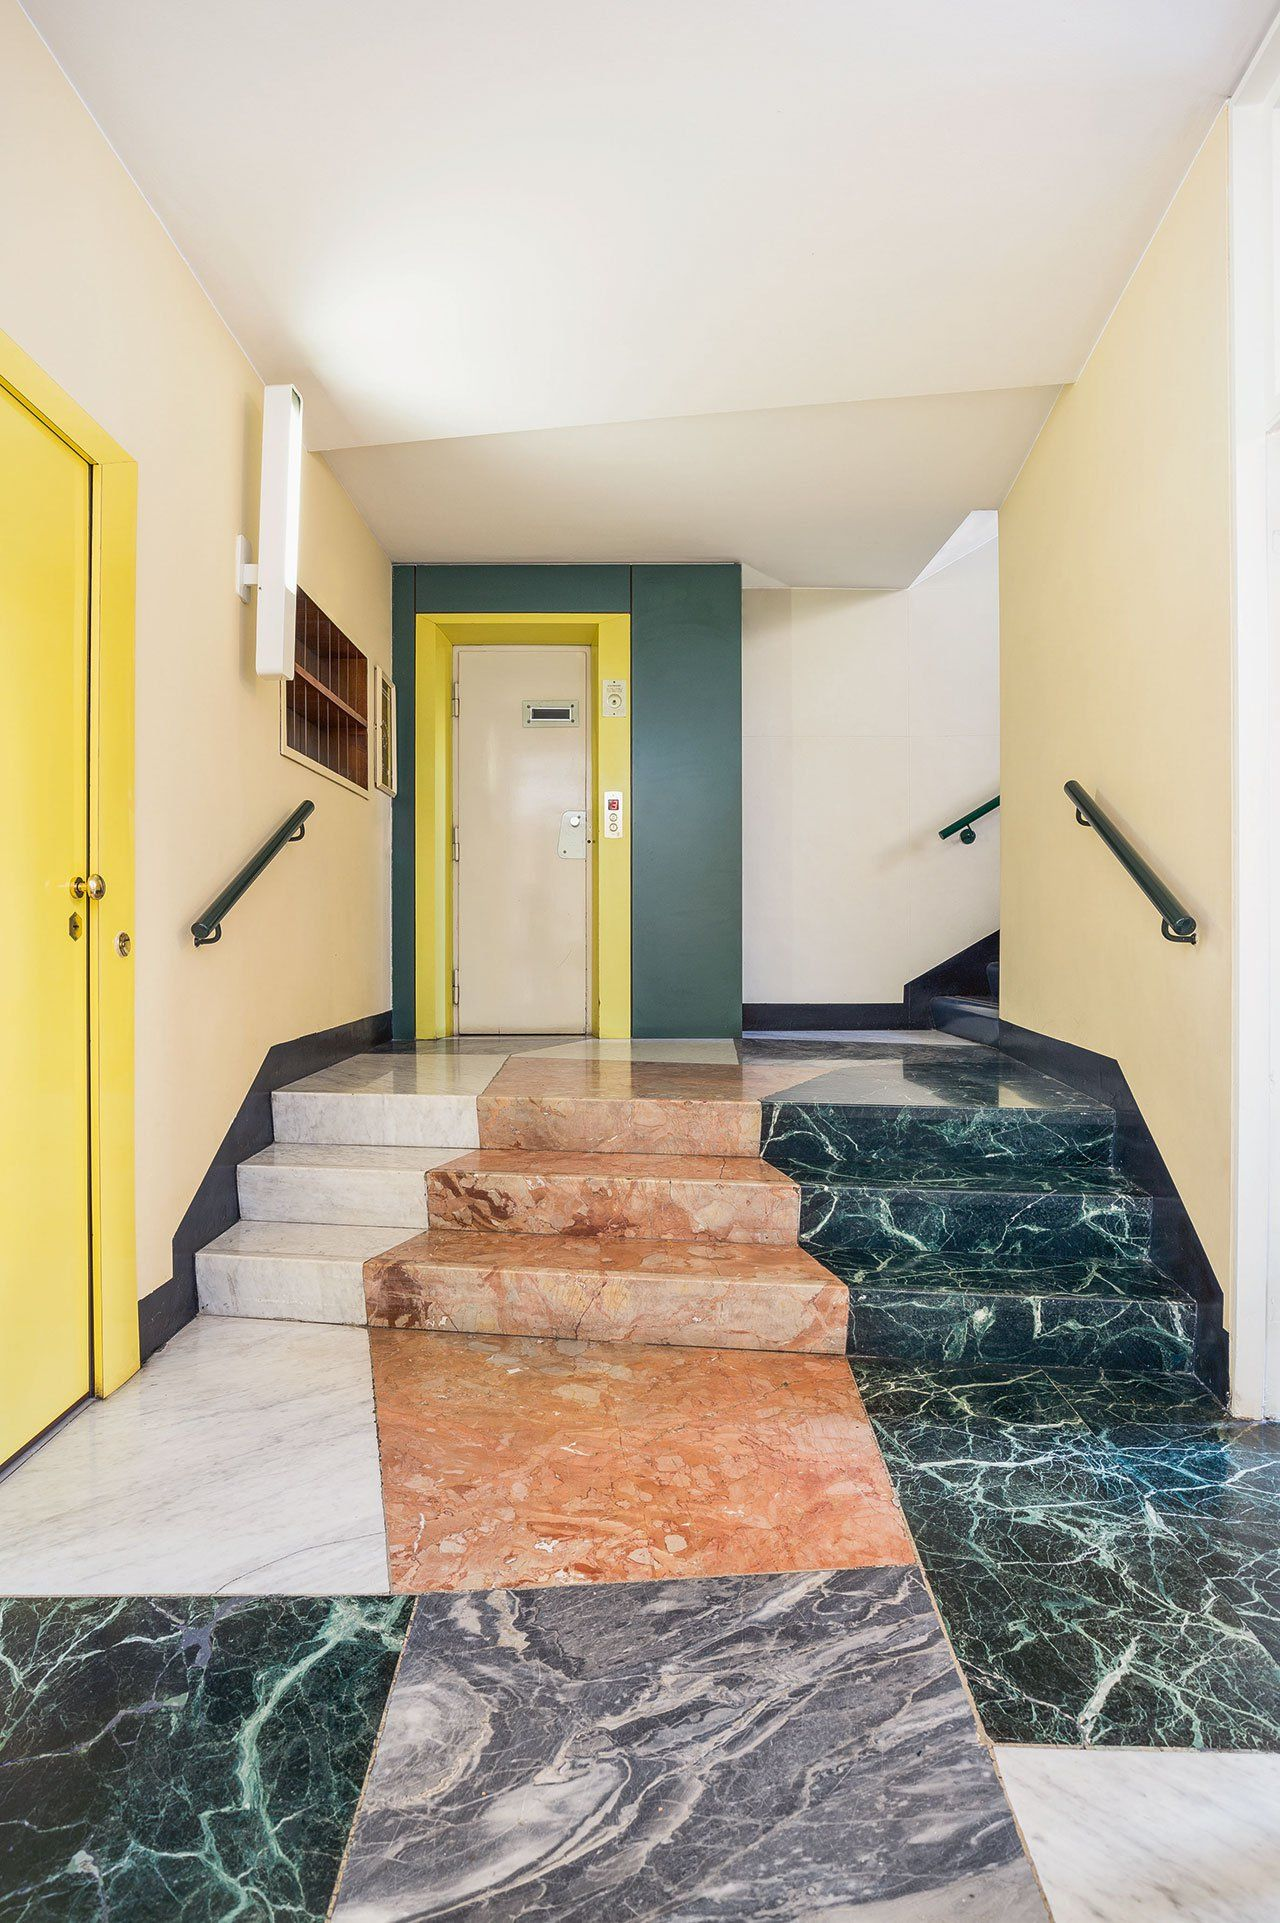 Innenarchitektur Verden Making An Entrance A Visual Tour Of Milan S Splendid Entryways By